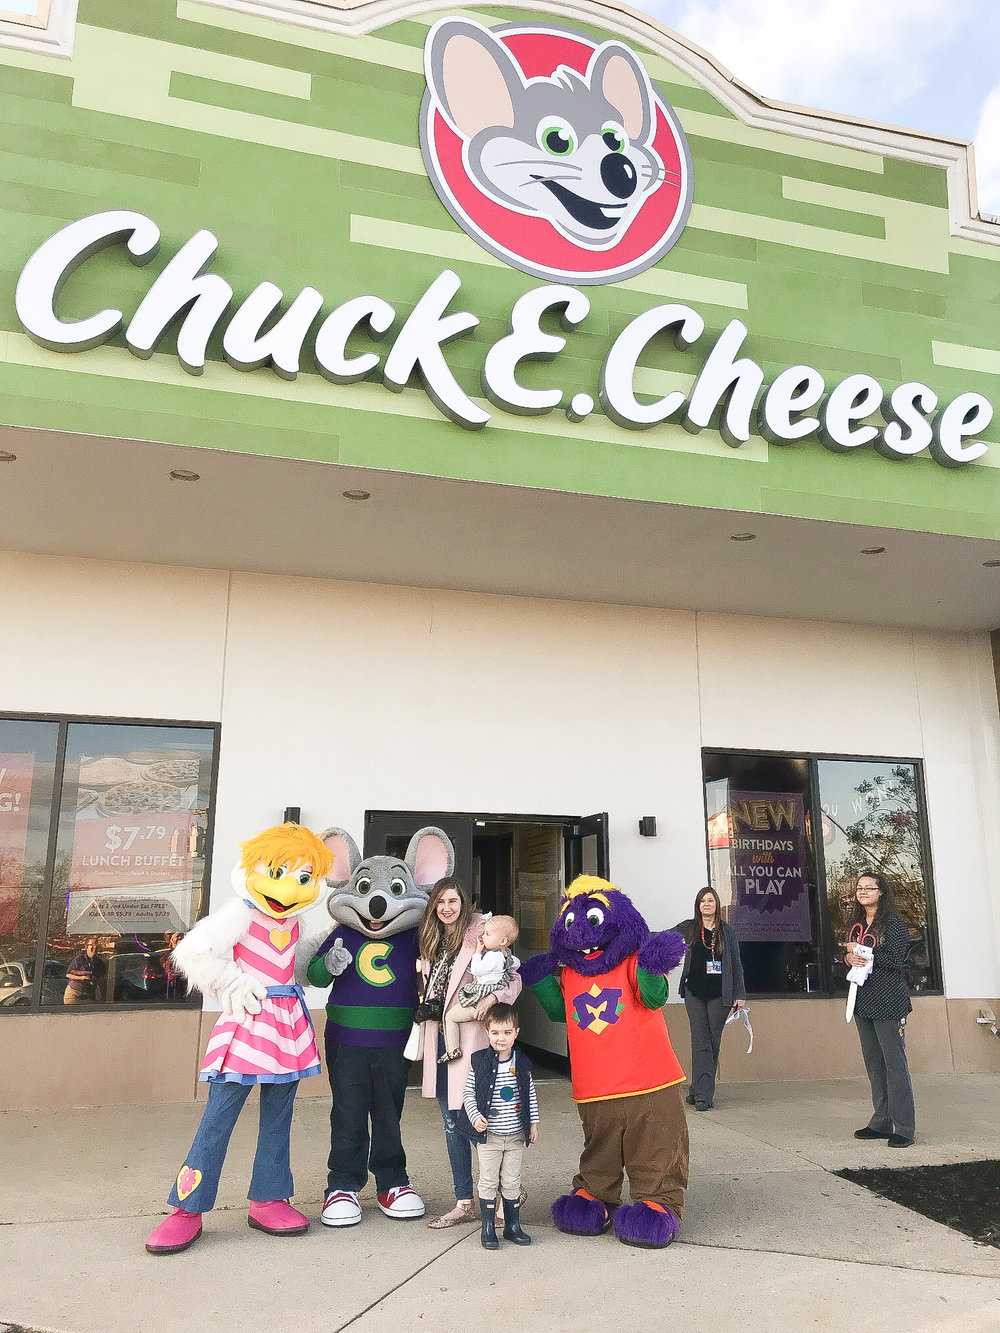 Chuck E Cheese's Greenville Renovation